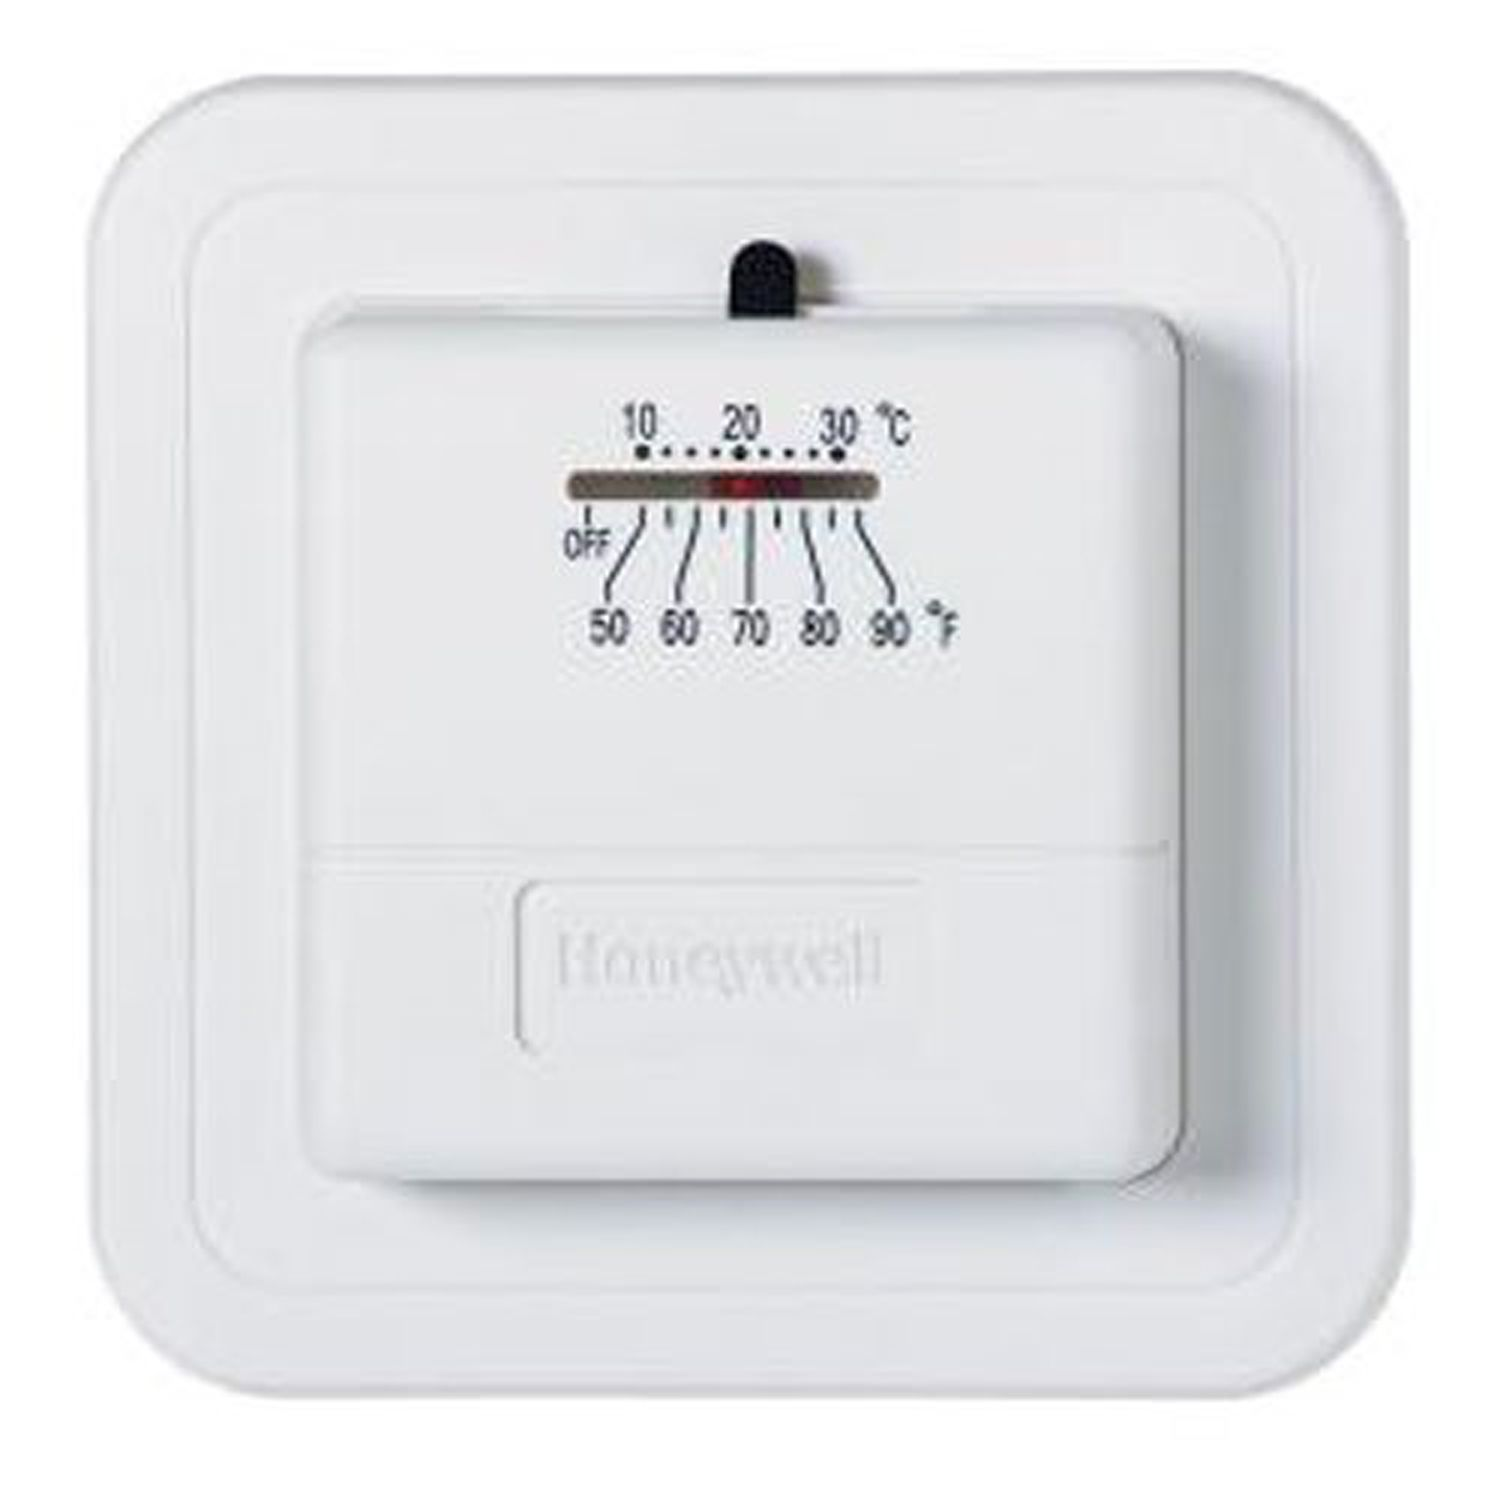 Choosing The Right Thermostat For Your Furnace Wiring Diagram Besides Electric Baseboard Heater